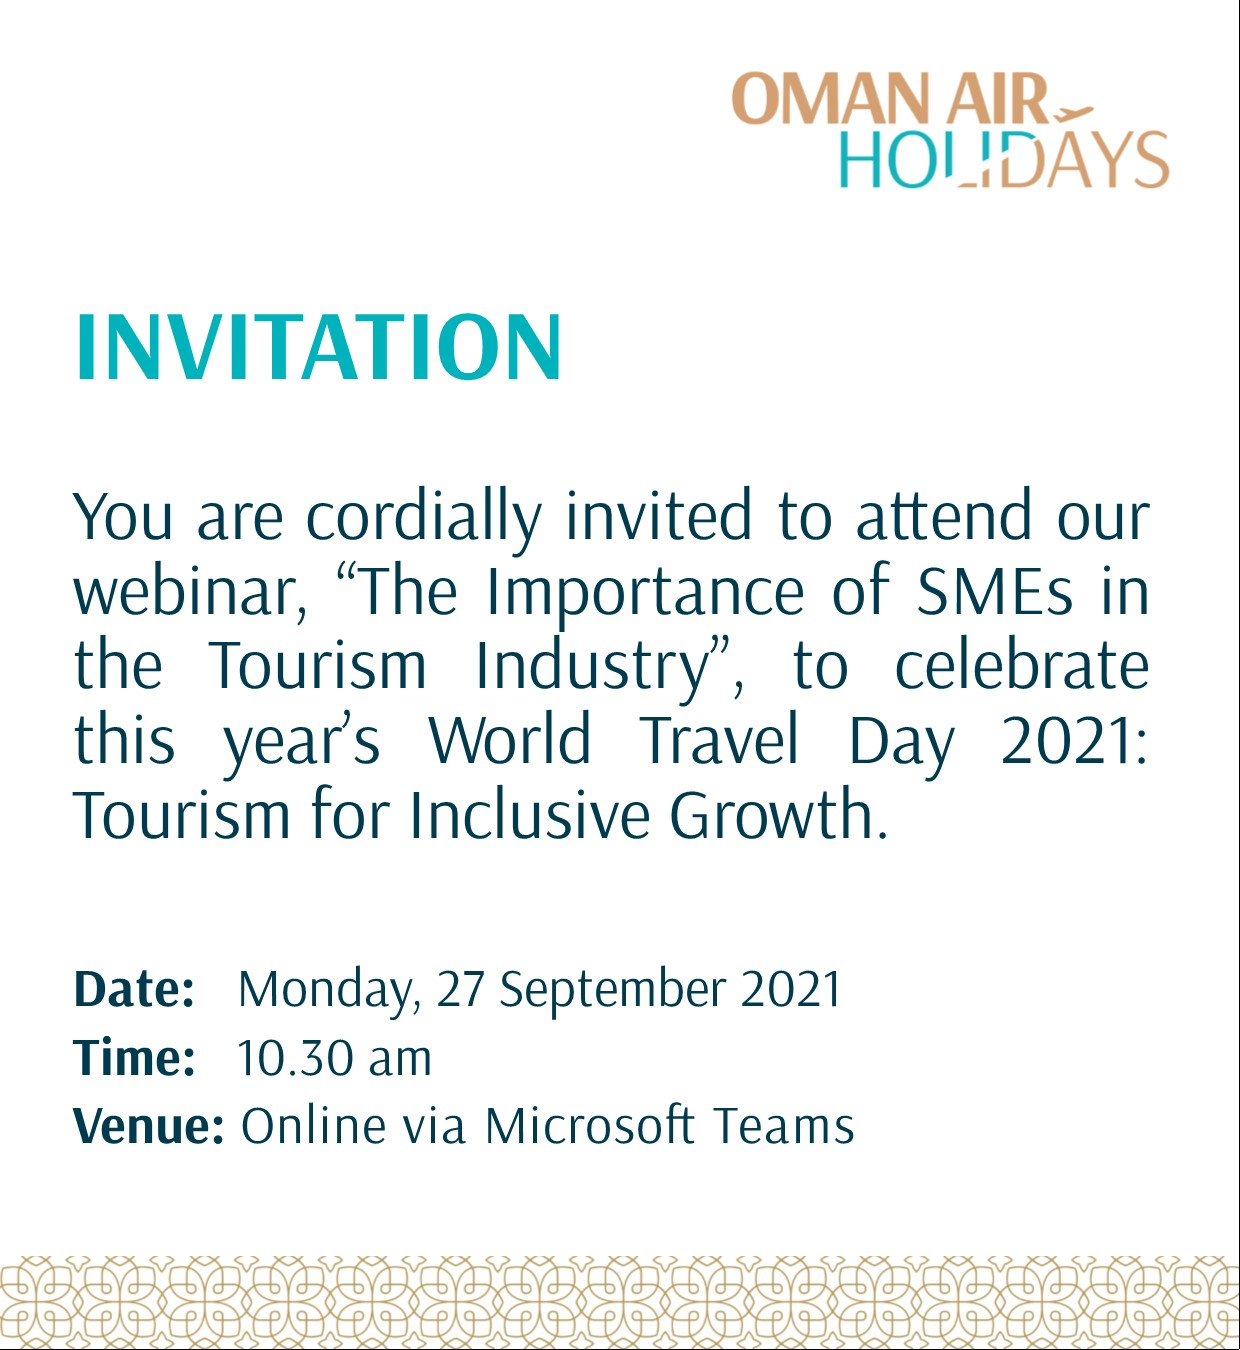 The Importance of SMEs in the Tourism Industry